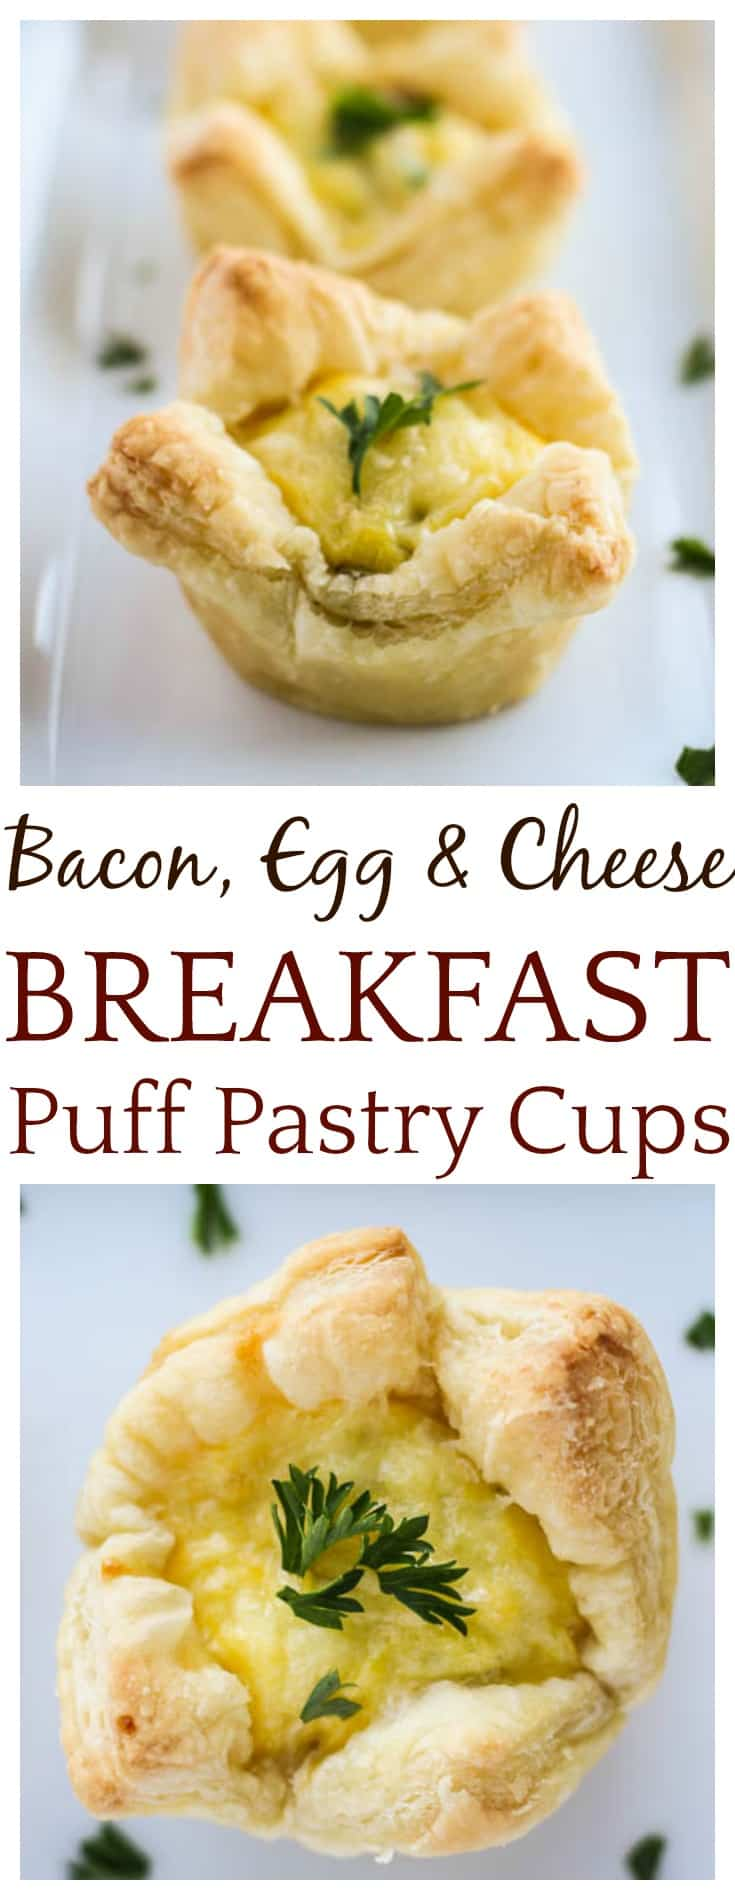 These all-in-one Bacon, Egg, and Cheese Breakfast Puff Pastry Cups are a fun, delicious way to start the day! The easy breakfast recipe also works great for brunch and kids love them too! #breakfast #brunch #puffpastry #easyrecipe #puffpastrycups #DLB